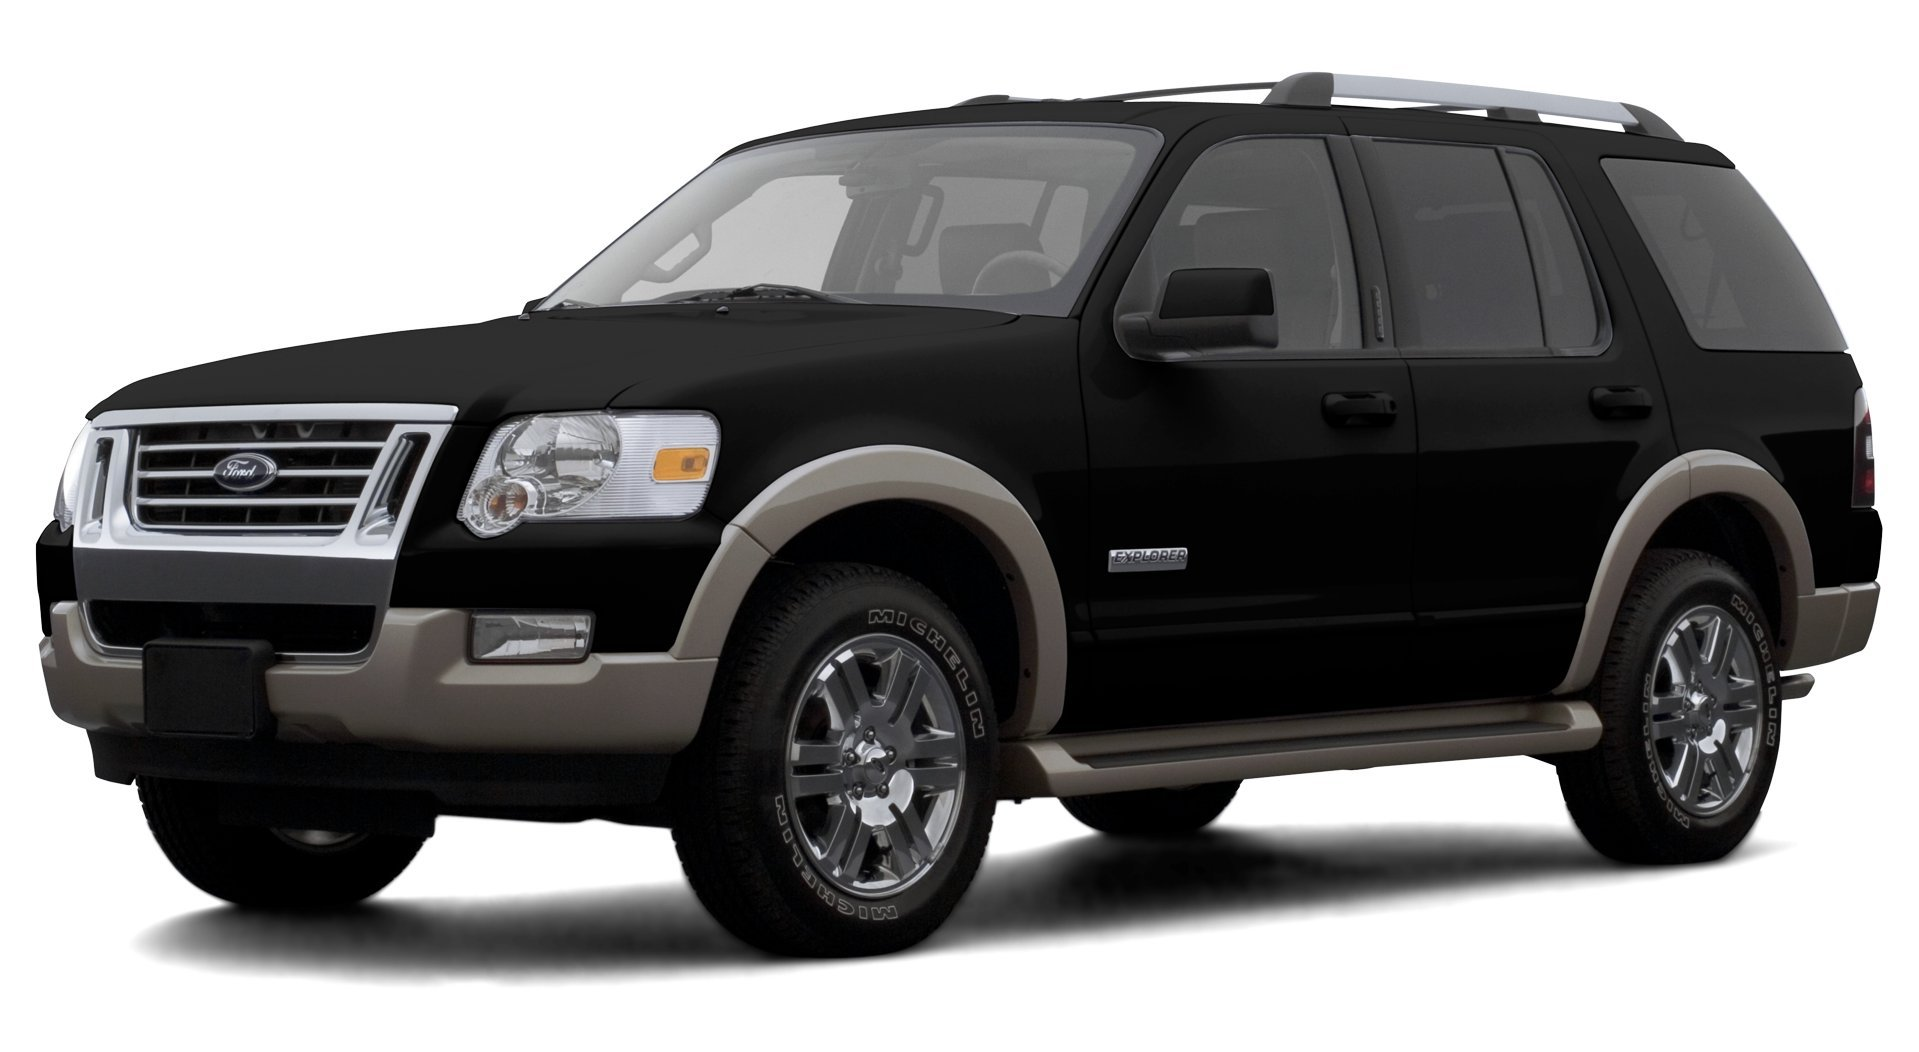 2007 ford explorer reviews images and specs vehicles. Black Bedroom Furniture Sets. Home Design Ideas